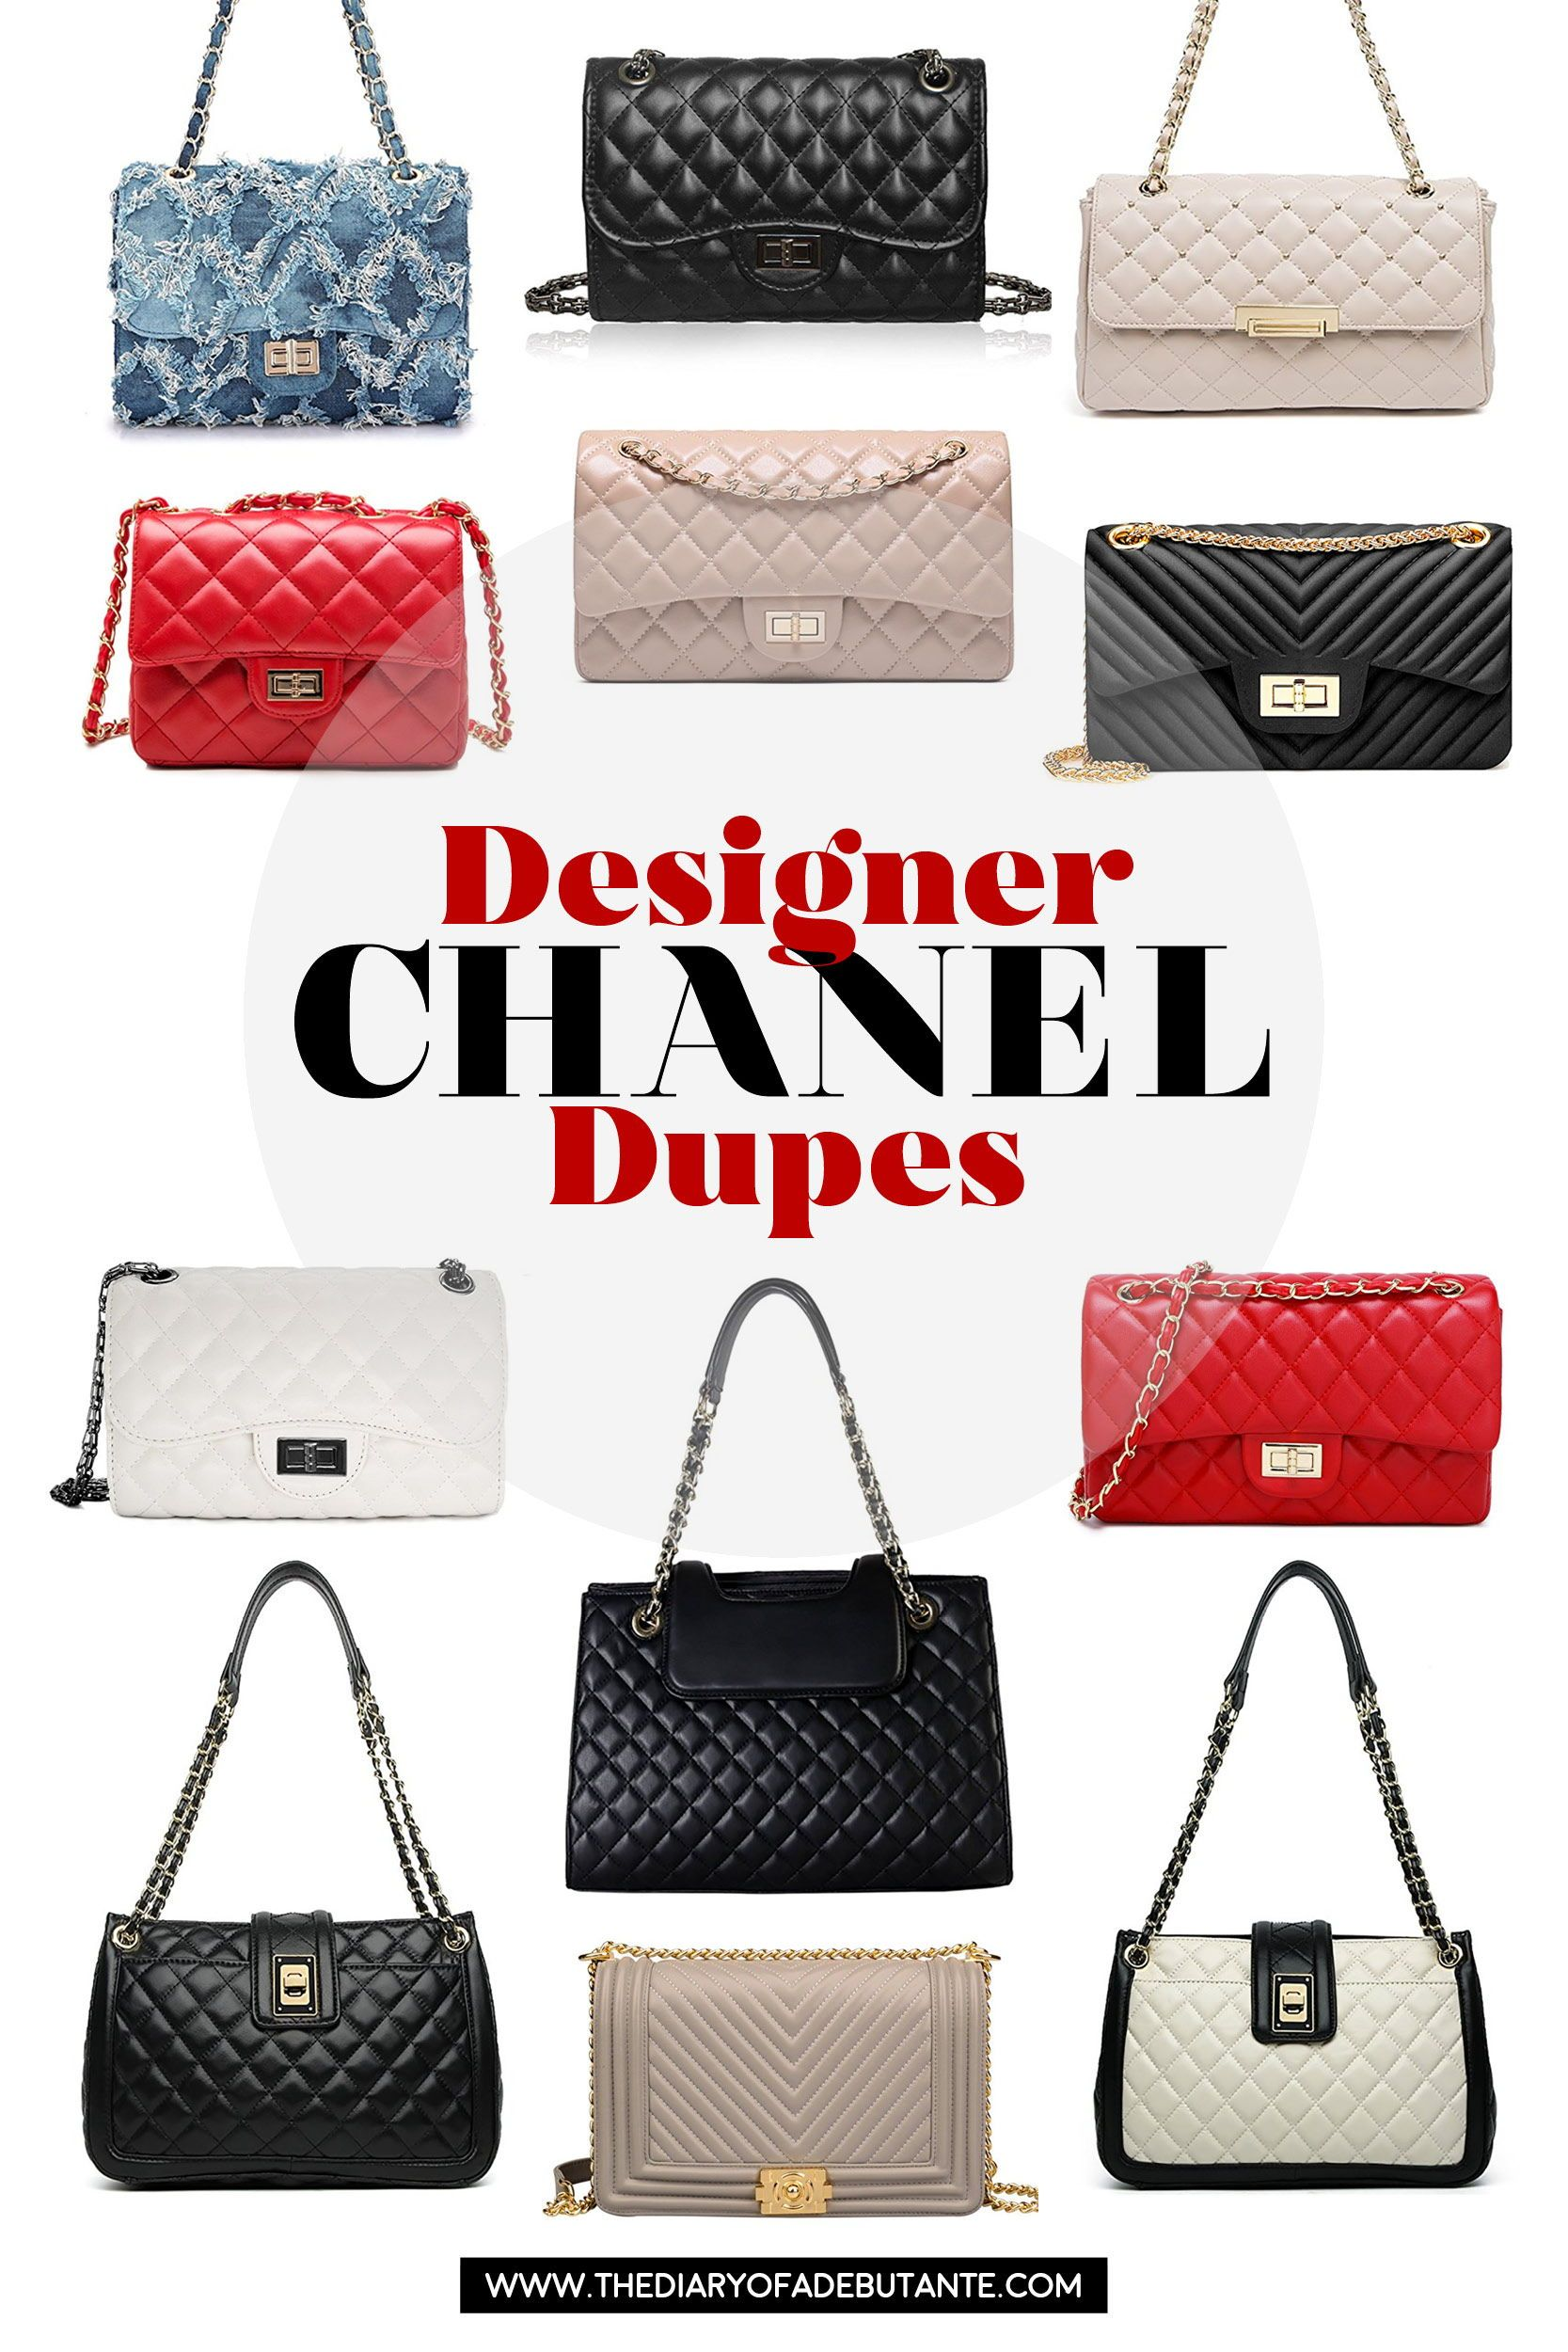 The Best Chanel Dupes And Where To Find Them Trending Handbag Bags Luxe Handbags